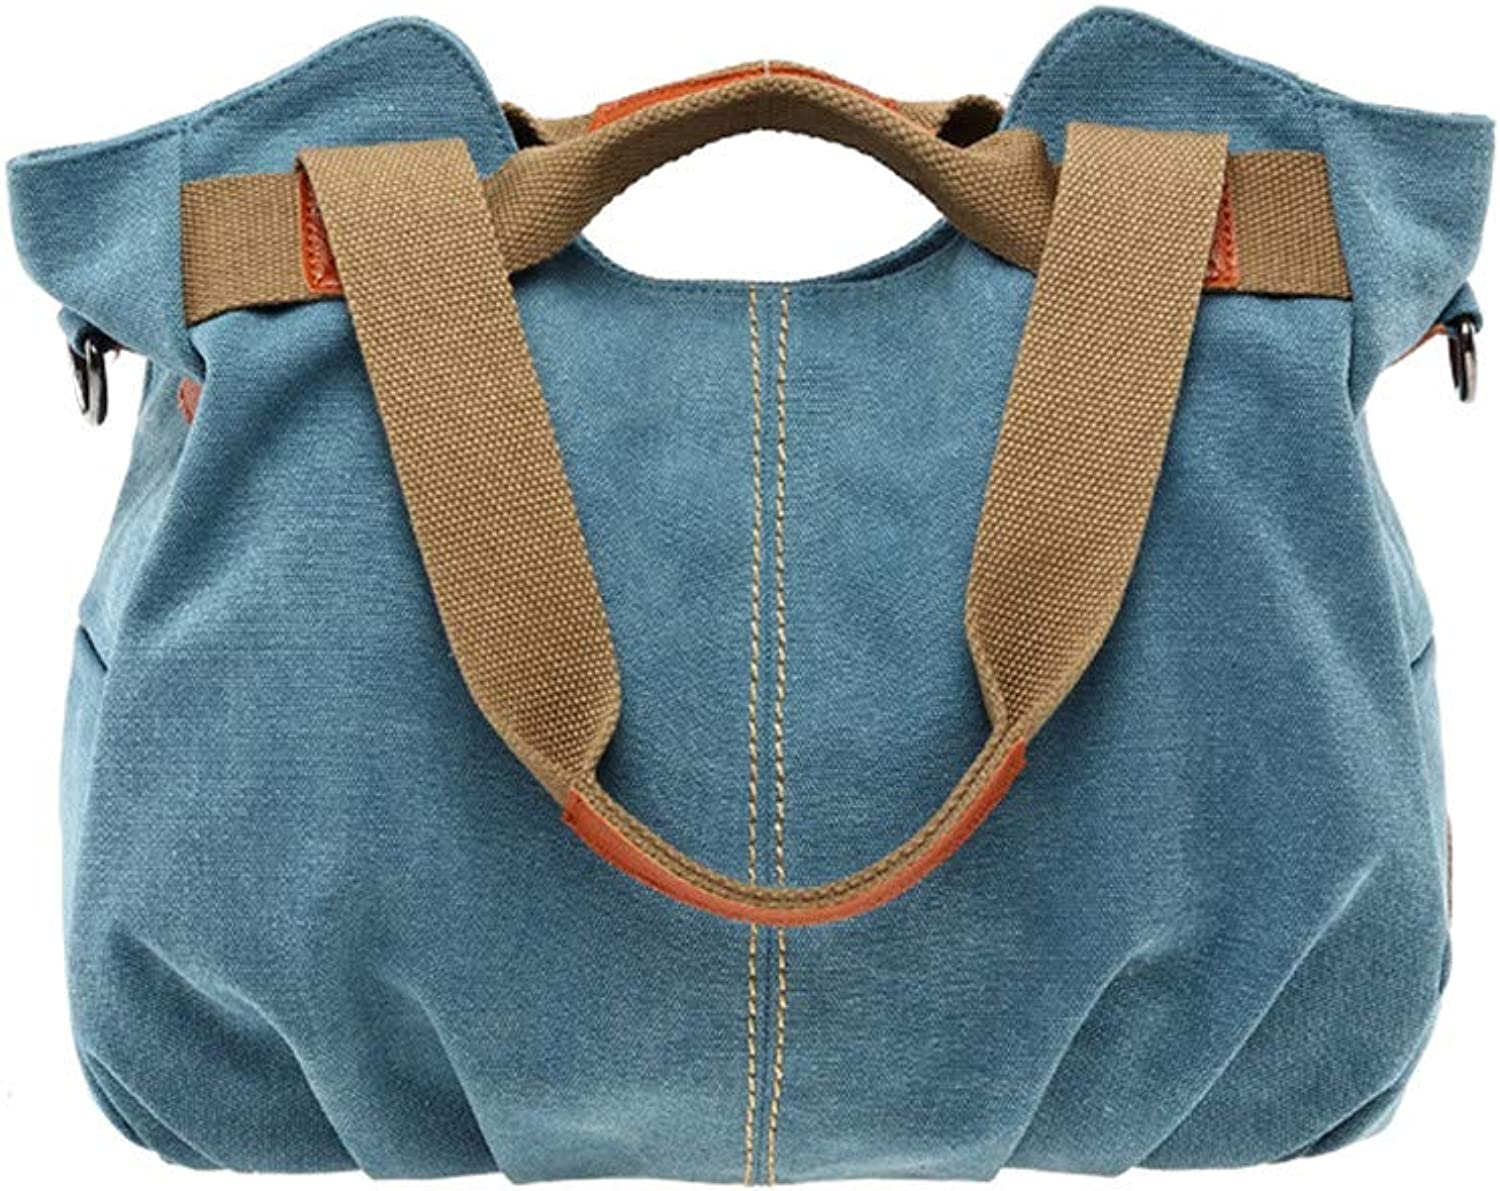 MXQH damen Ladies Bags Vintage Hobo Canvas Daily Purse Purse Purse Shoulder Tote Shopper Handtasche,Blau B07PK7SLYR  Abrechnungspreis a9466f